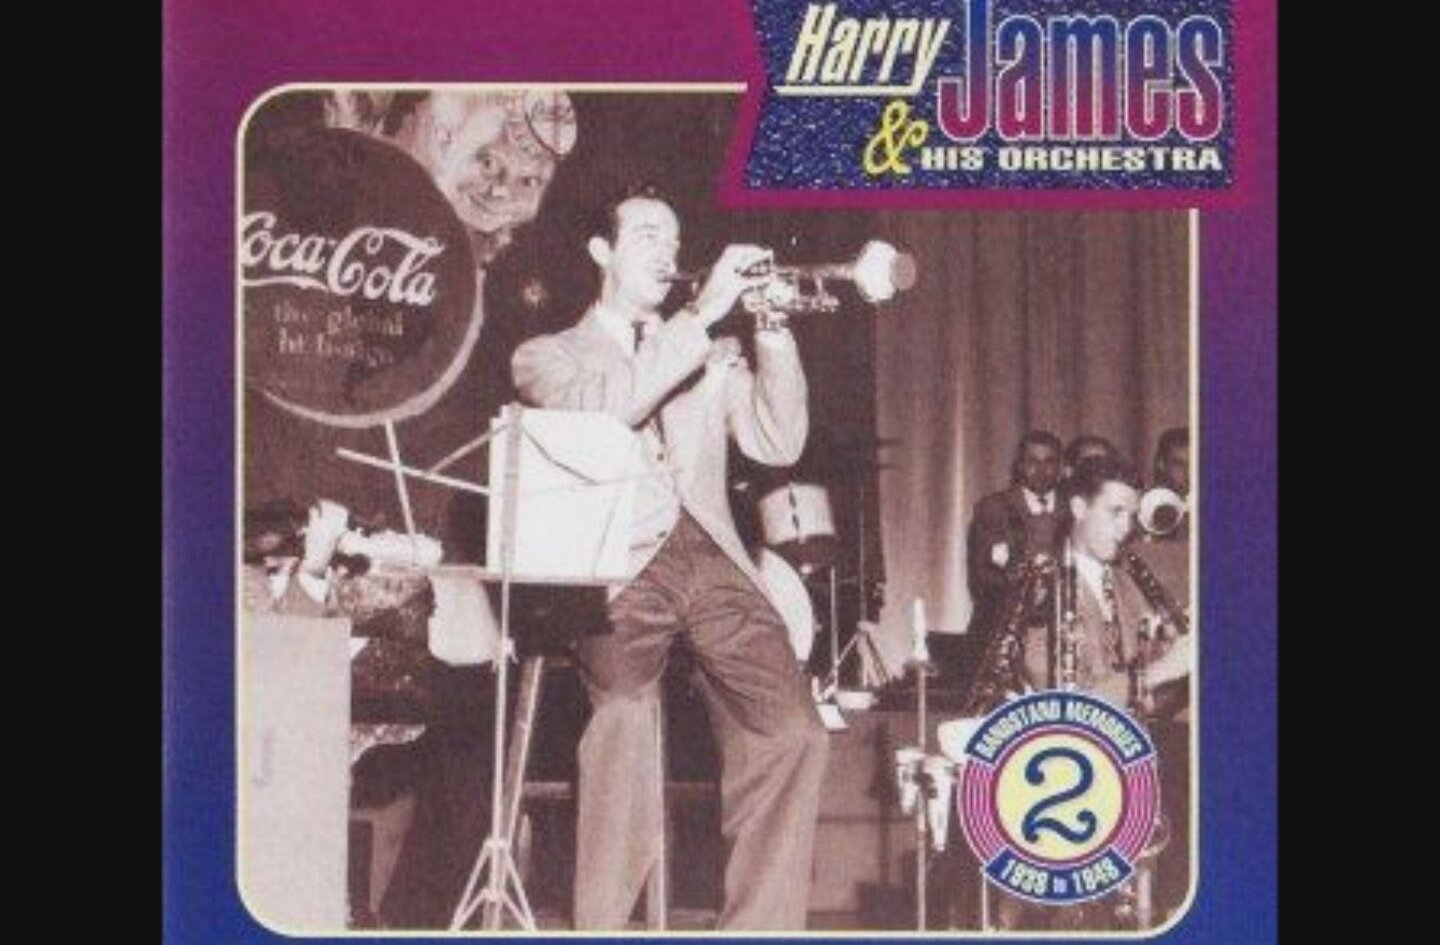 Harry James And His Orchestra - Memphis Blues - Sleepy Time Gal